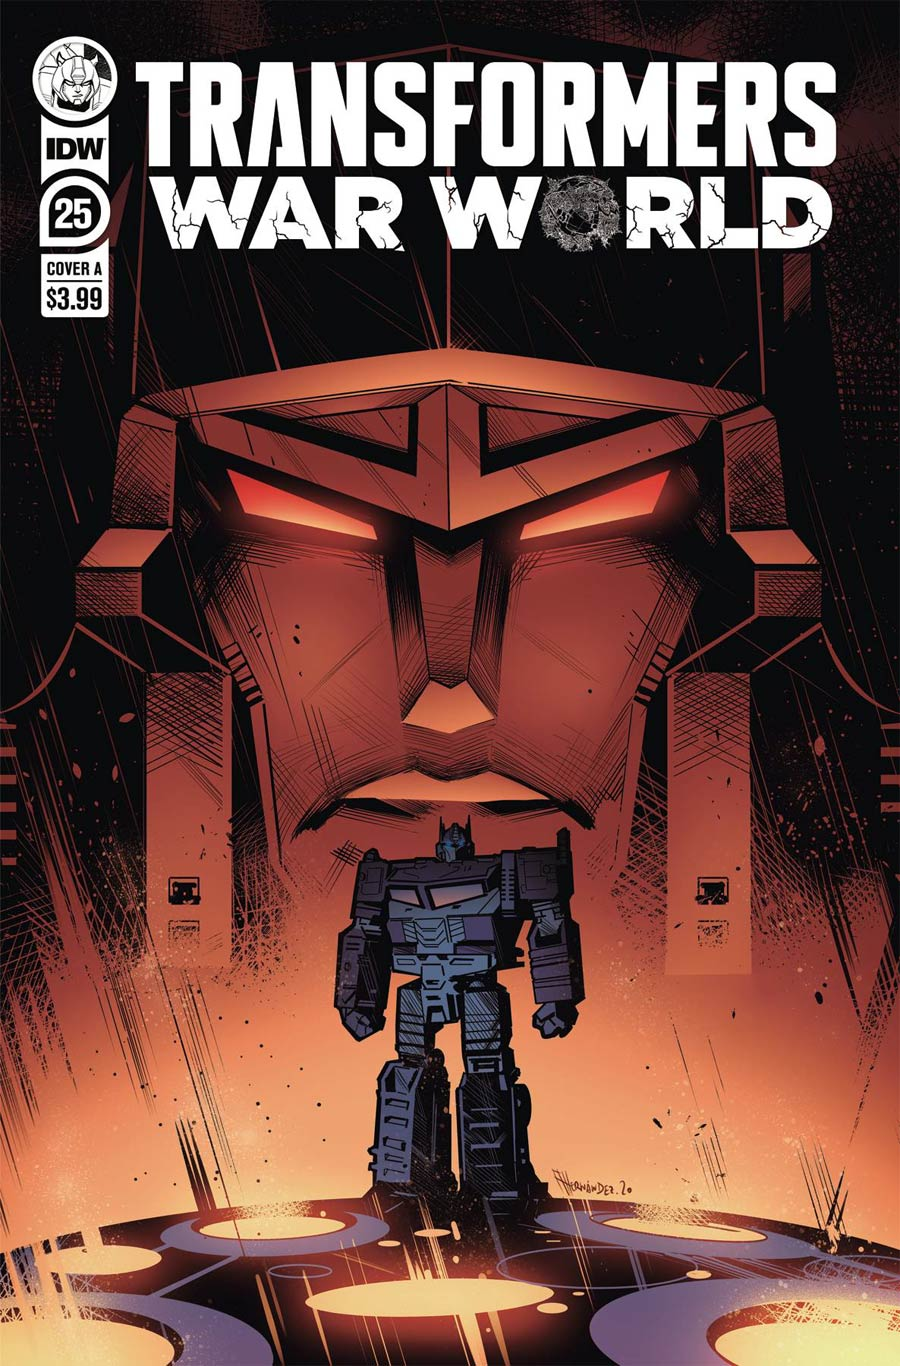 Transformers Vol 4 #25 Cover A Regular Angel Hernandez Cover